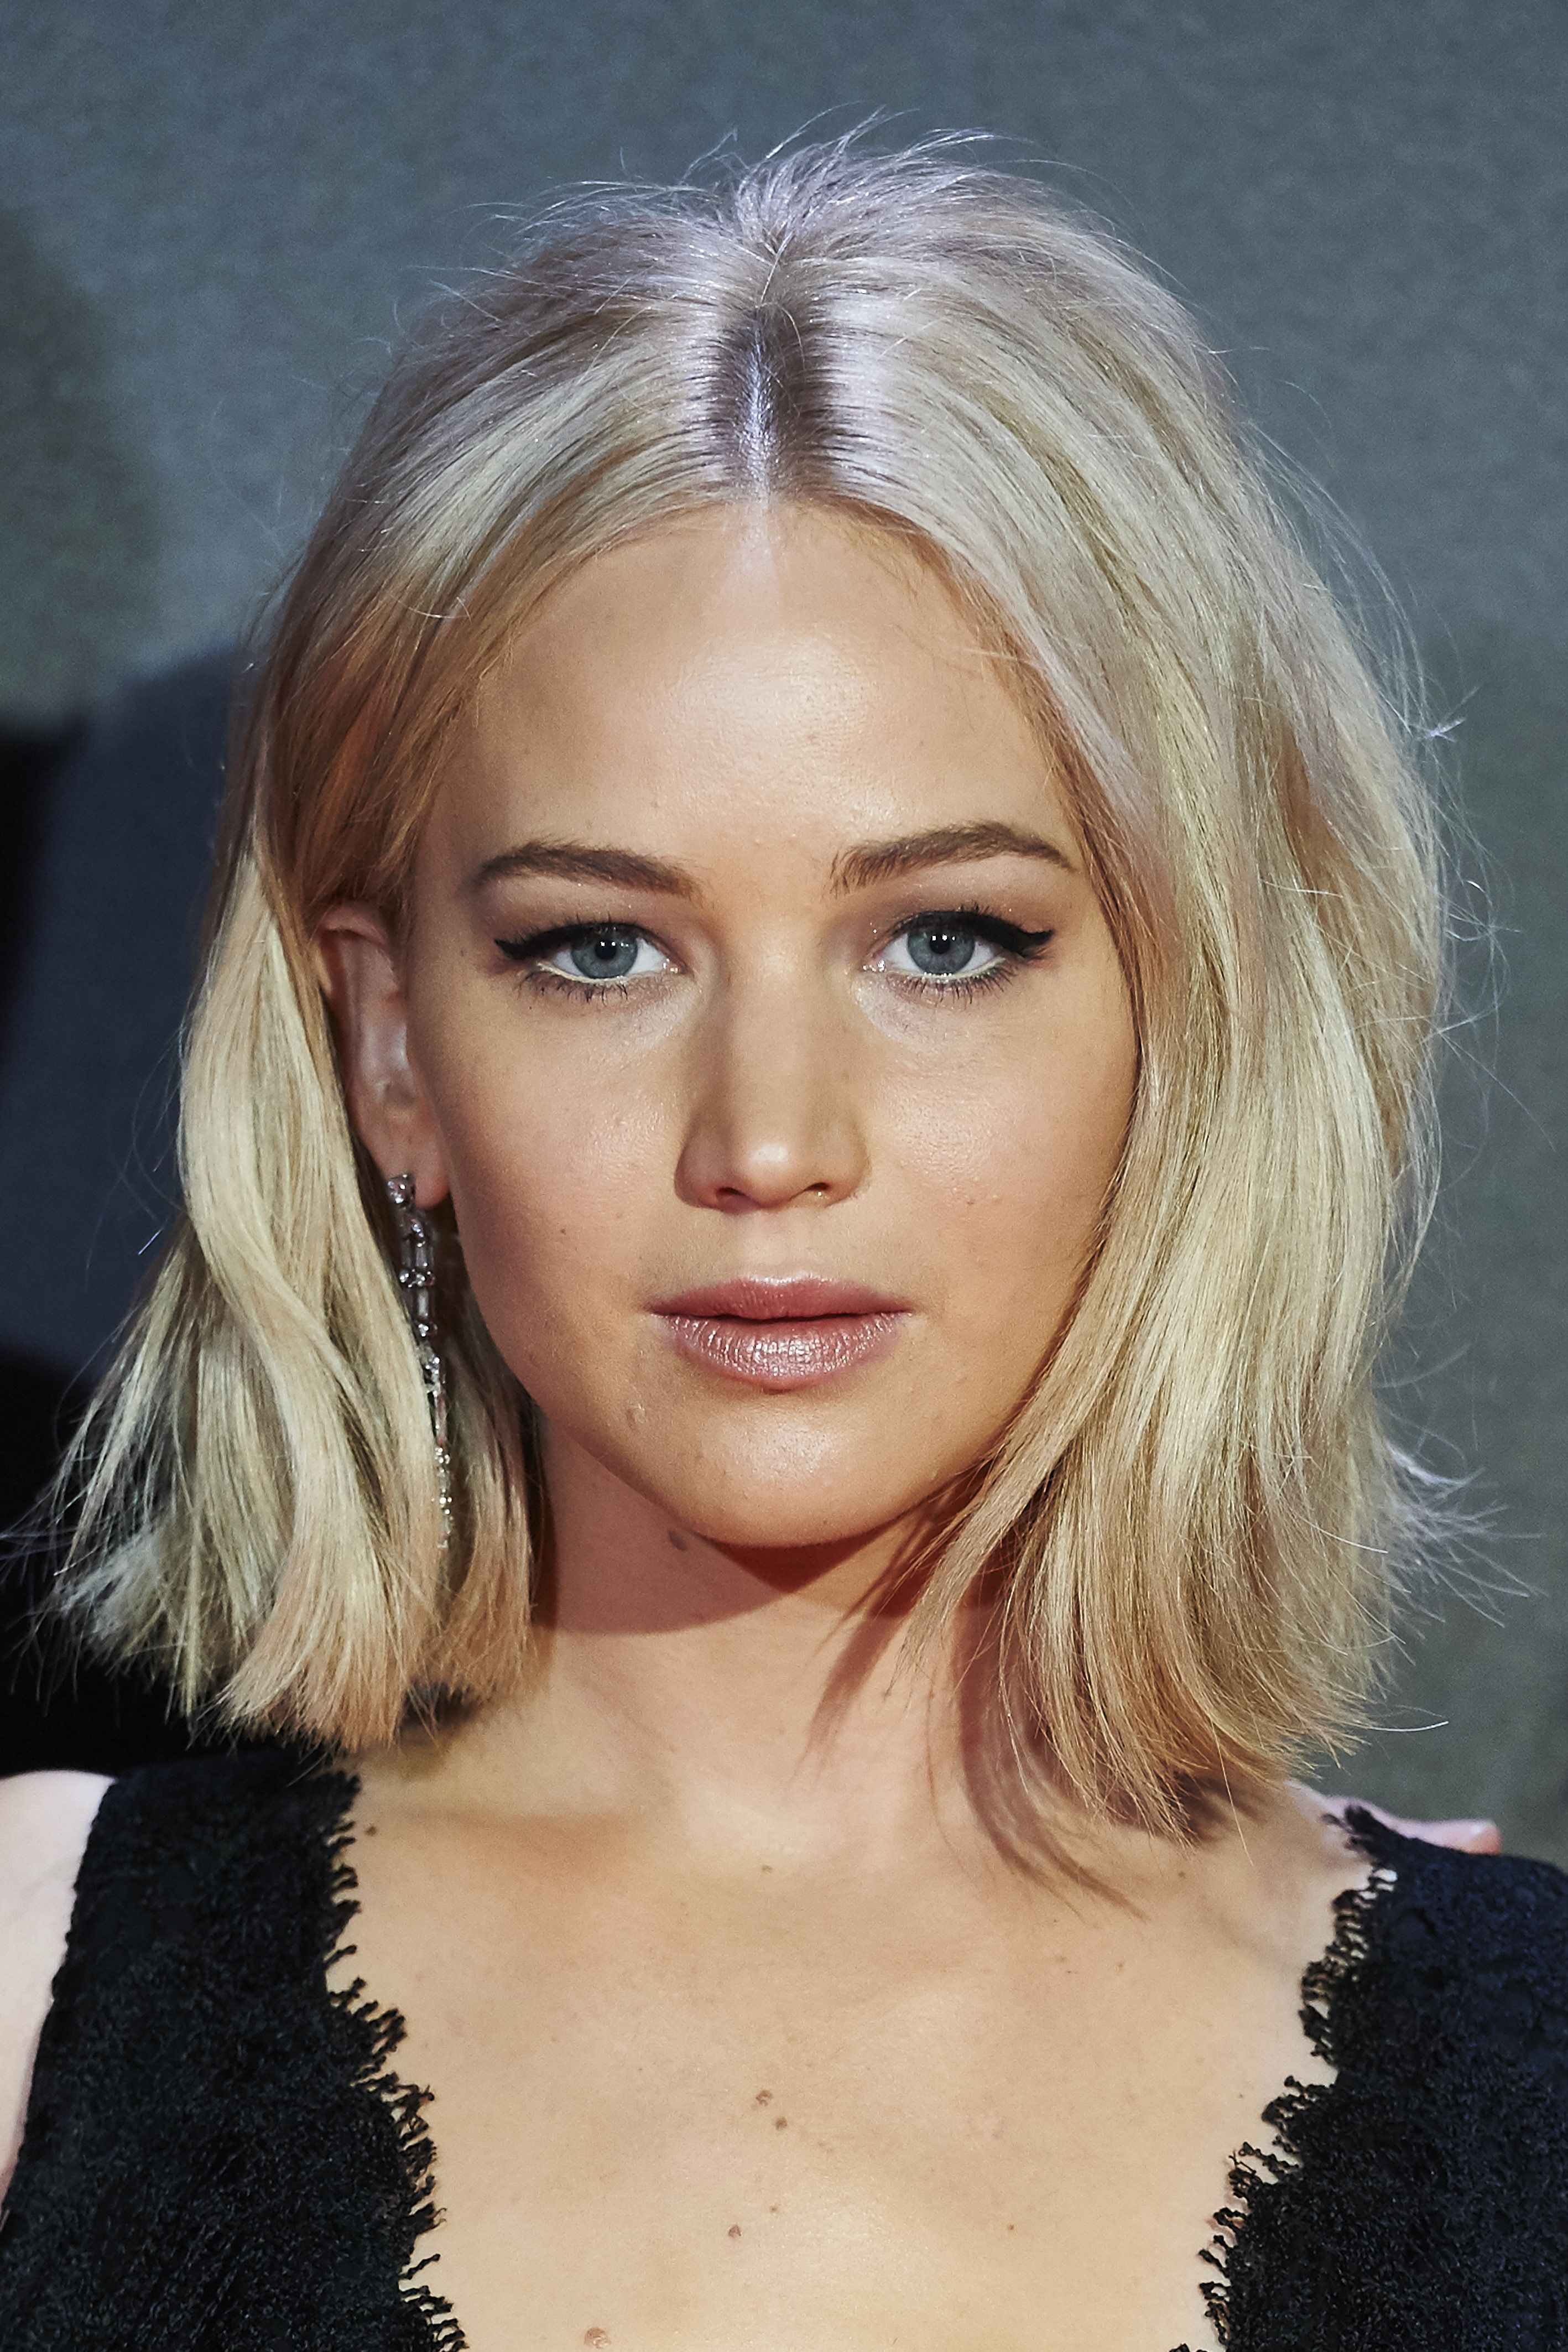 Short hair styles from bobs to pixie haircuts shorter hairstyles